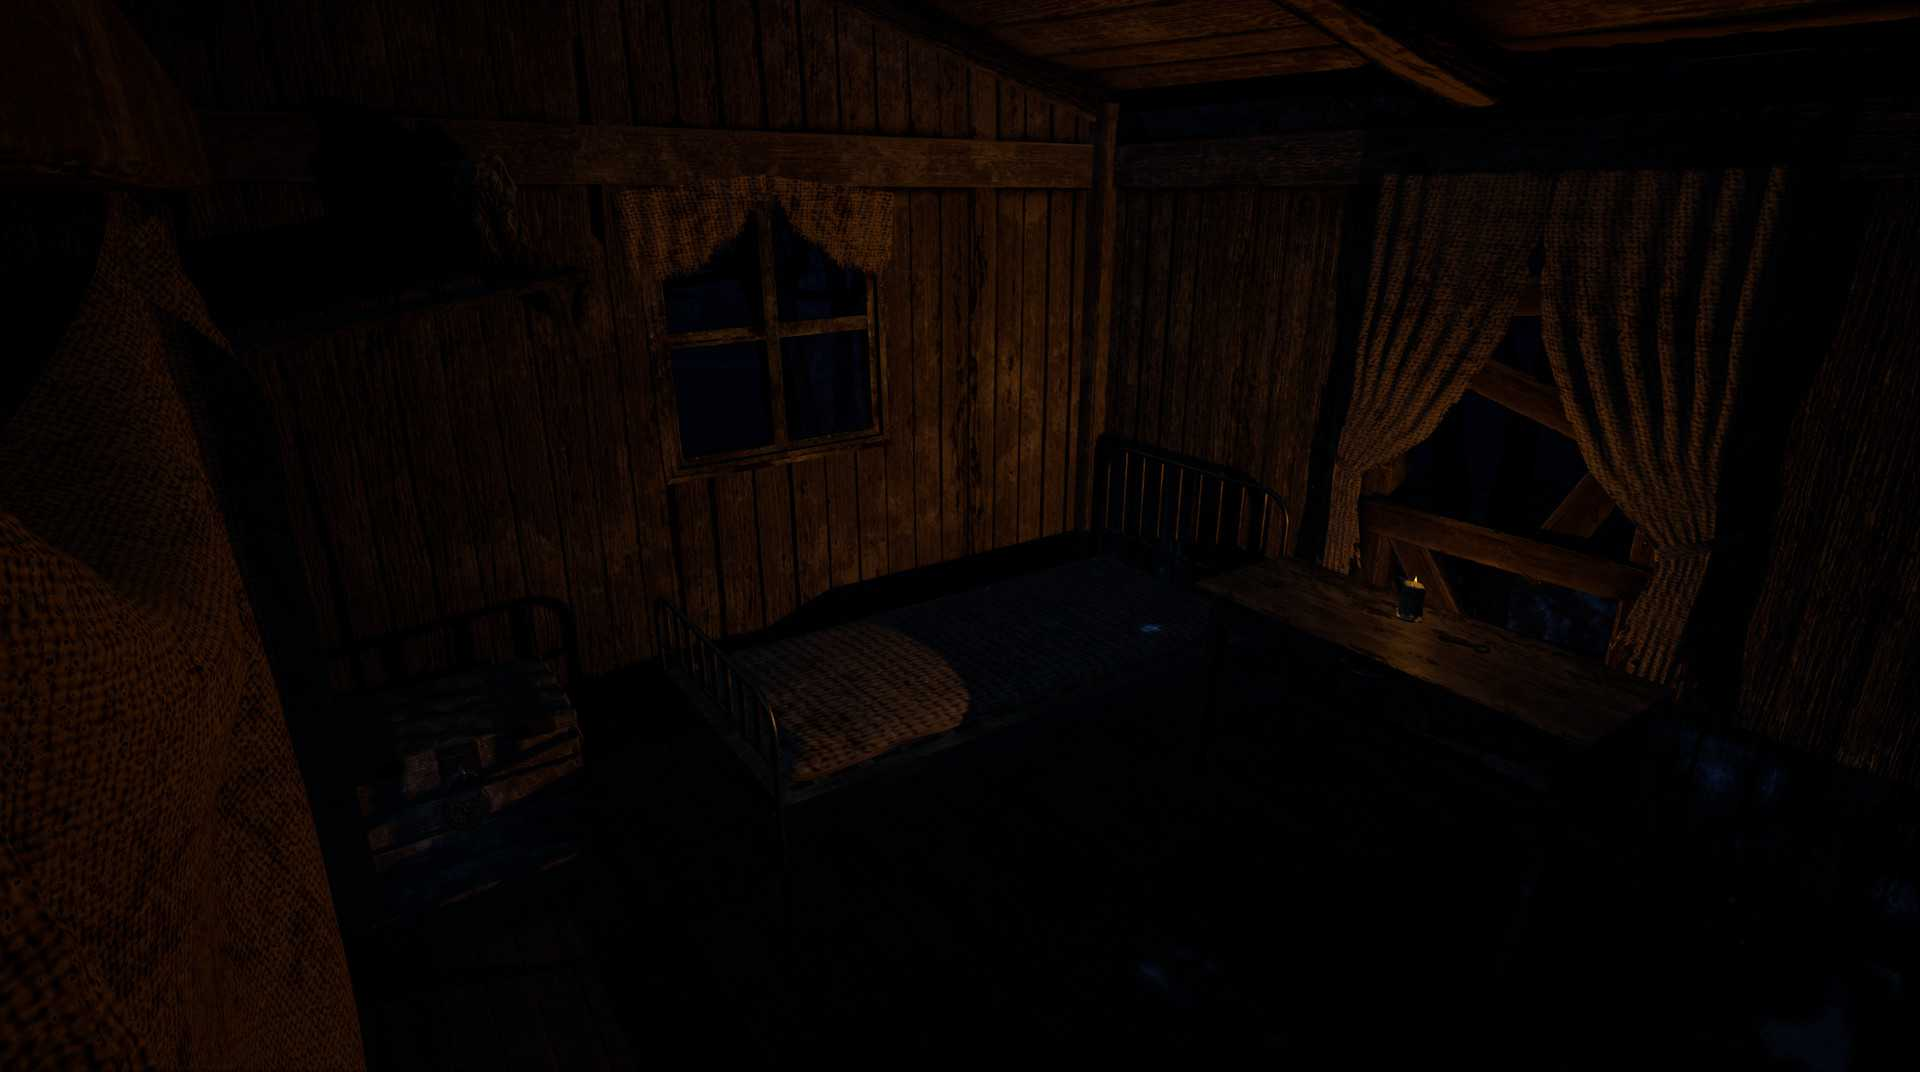 UNHALLOWED: THE CABIN